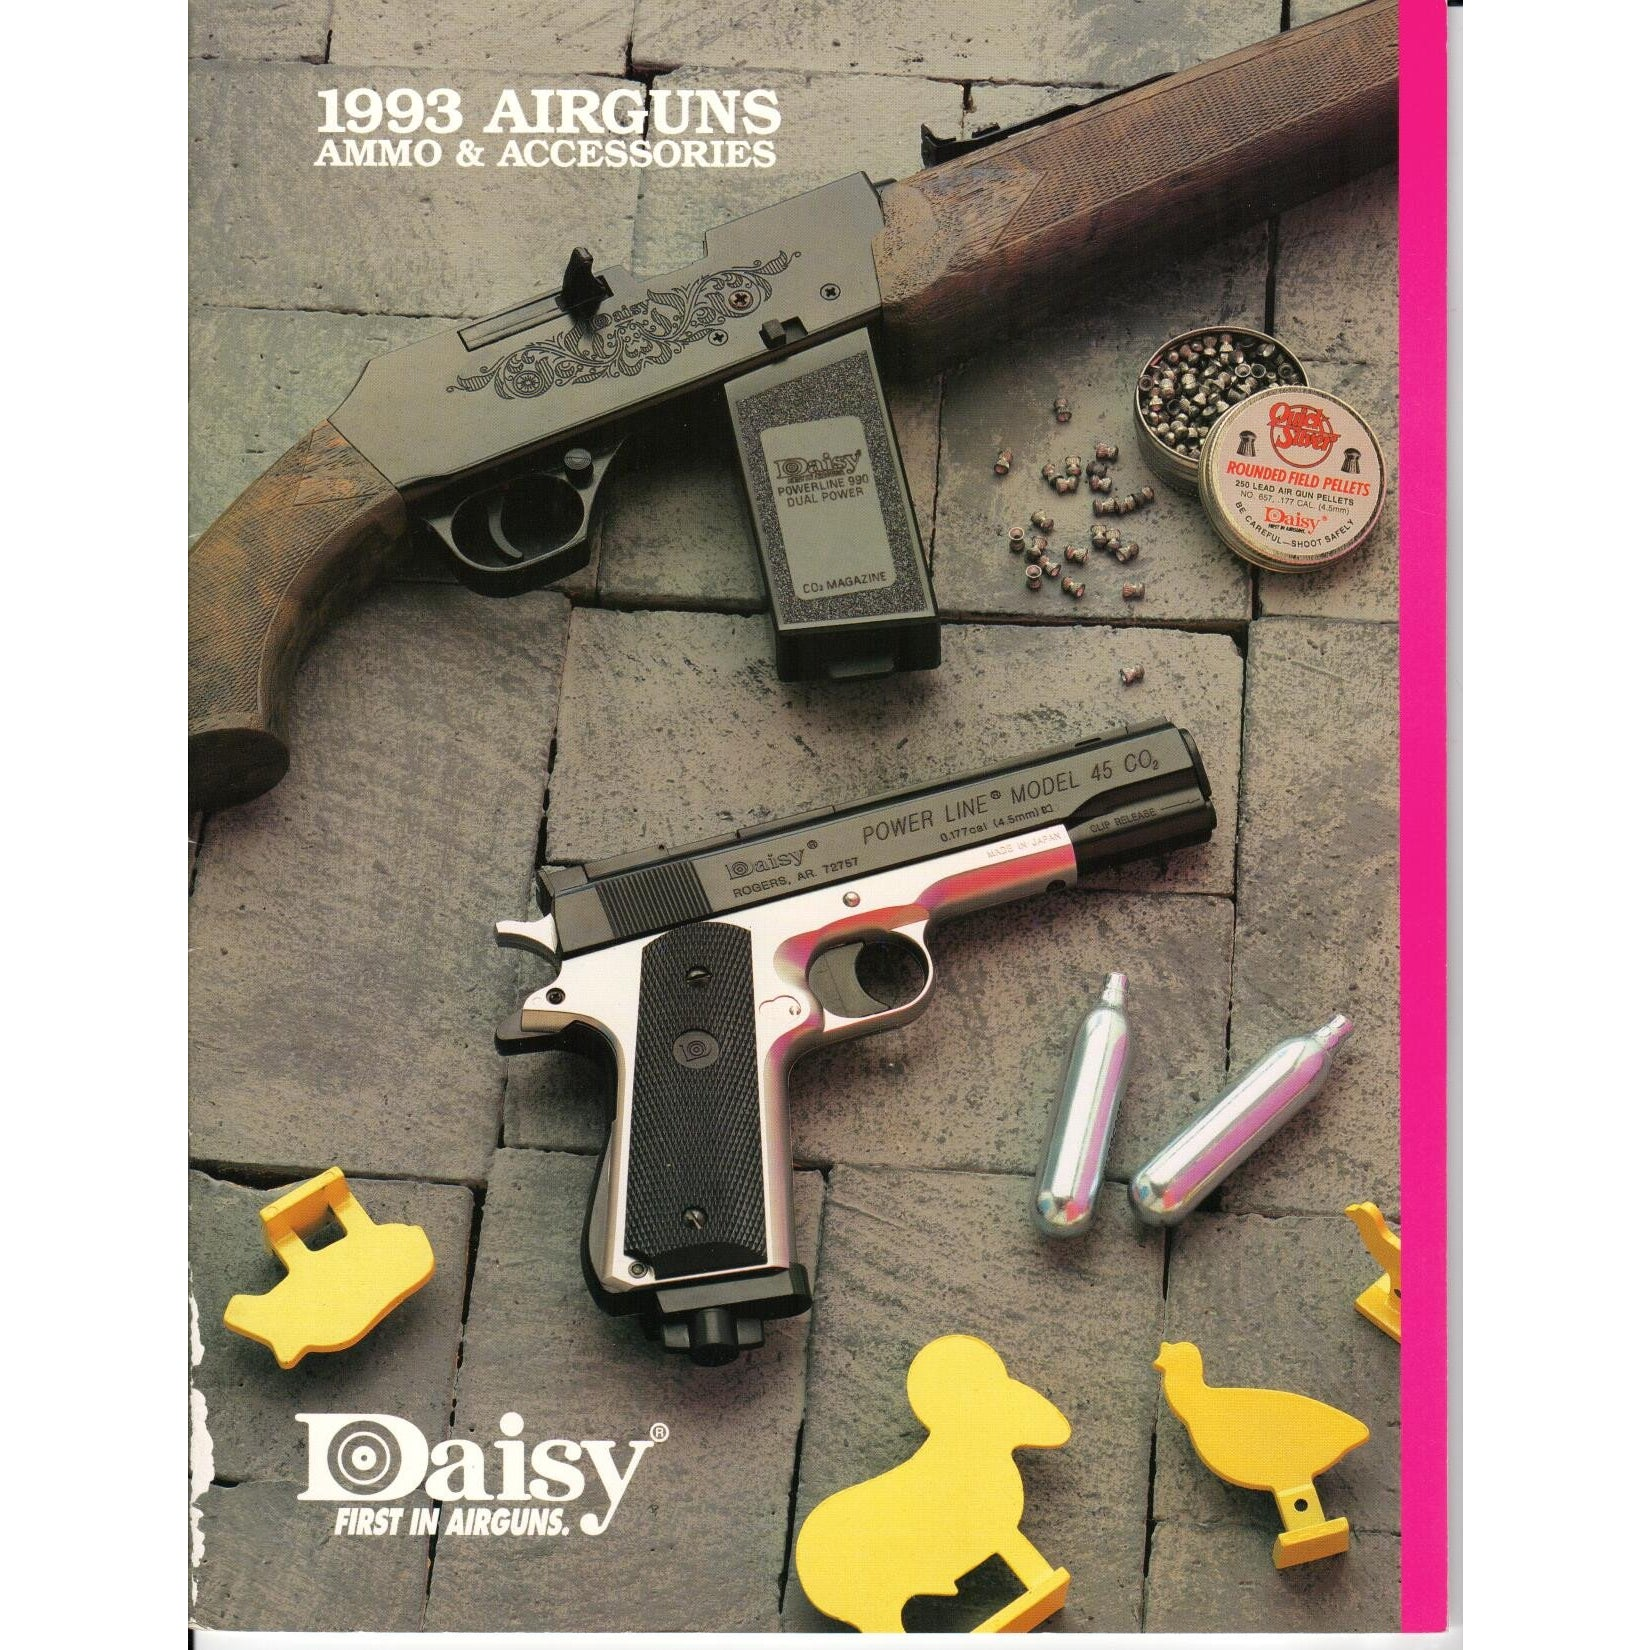 Daisy 1993 Airguns, Ammo & Accessories,Catalogues & Brochures- Canada Brass